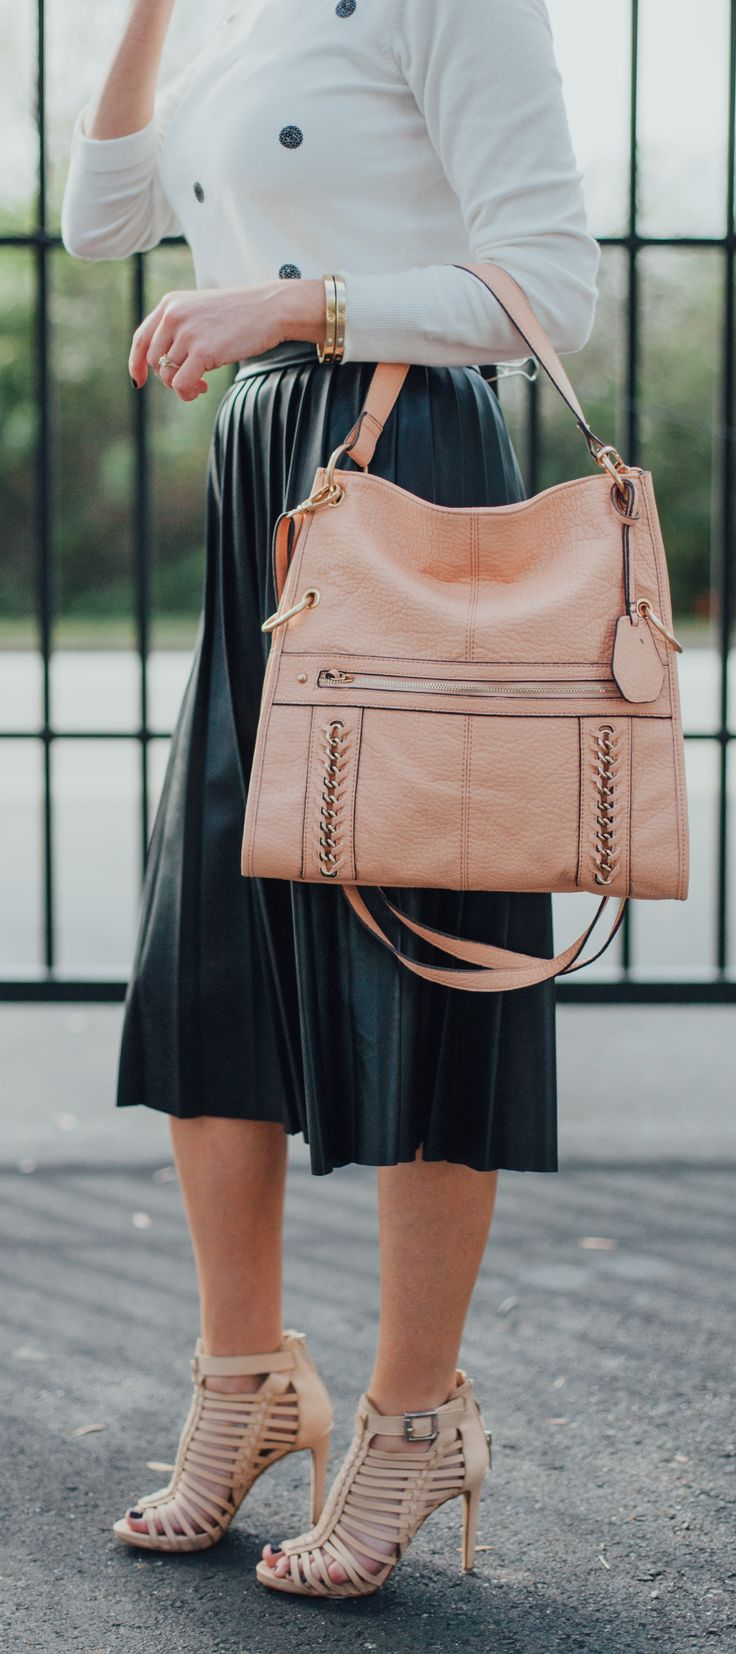 This Jessica Simpson foldover bag is the answer to all of your handbag problems! It's perfect for work or play, and can be worn a few different ways! Choose from 3 different colors - Black, Peach and Seafoam!